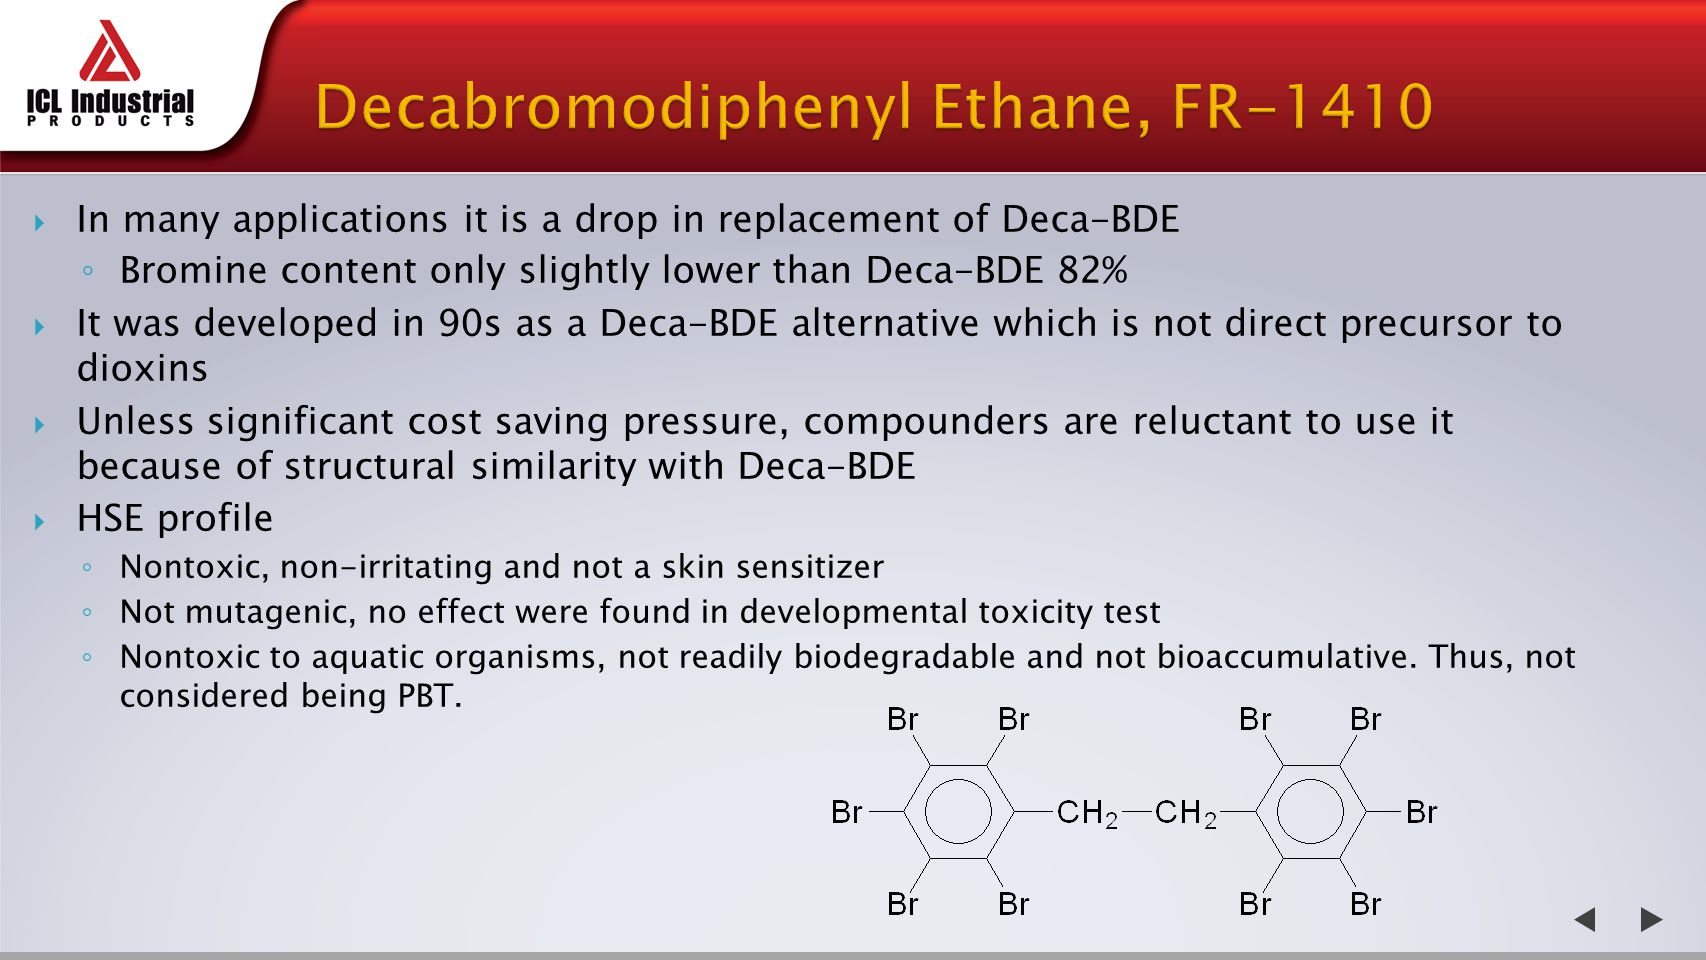  In many applications it is a drop in replacement of Deca-BDE ◦ Bromine content only slightly lower than Deca-BDE 82%  It was developed in 90s as a Deca-BDE alternative which is not direct precursor to dioxins  Unless significant cost saving pressure, compounders are reluctant to use it because of structural similarity with Deca-BDE  HSE profile ◦ Nontoxic, non-irritating and not a skin sensitizer ◦ Not mutagenic, no effect were found in developmental toxicity test ◦ Nontoxic to aquatic organisms, not readily biodegradable and not bioaccumulative.